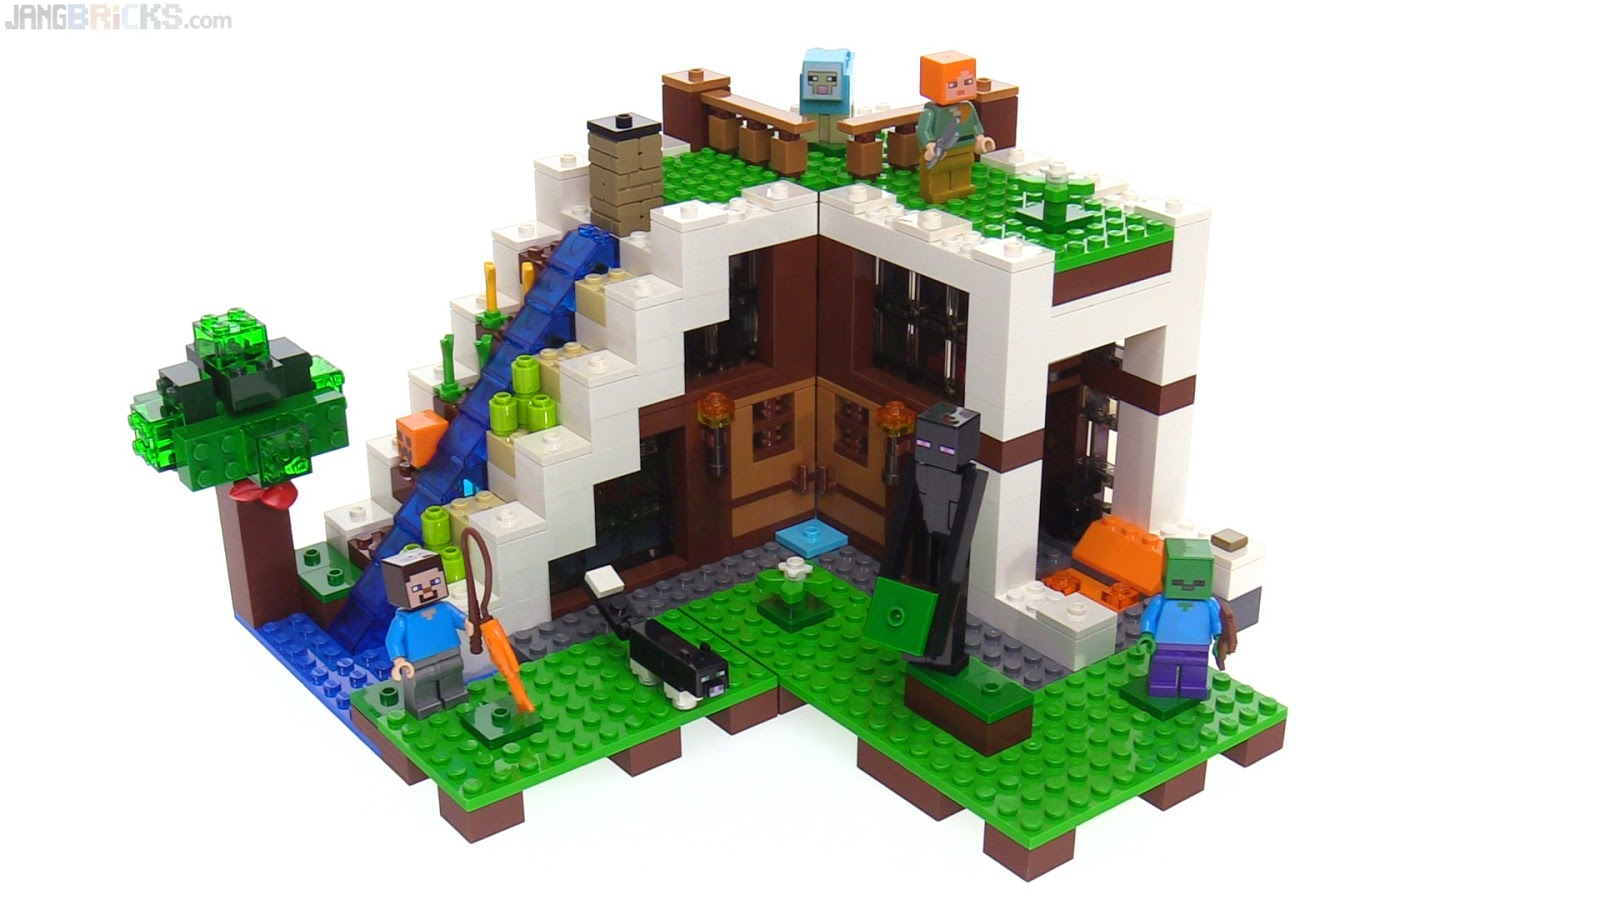 Lego Minecraft Waterfall Base Review 21134